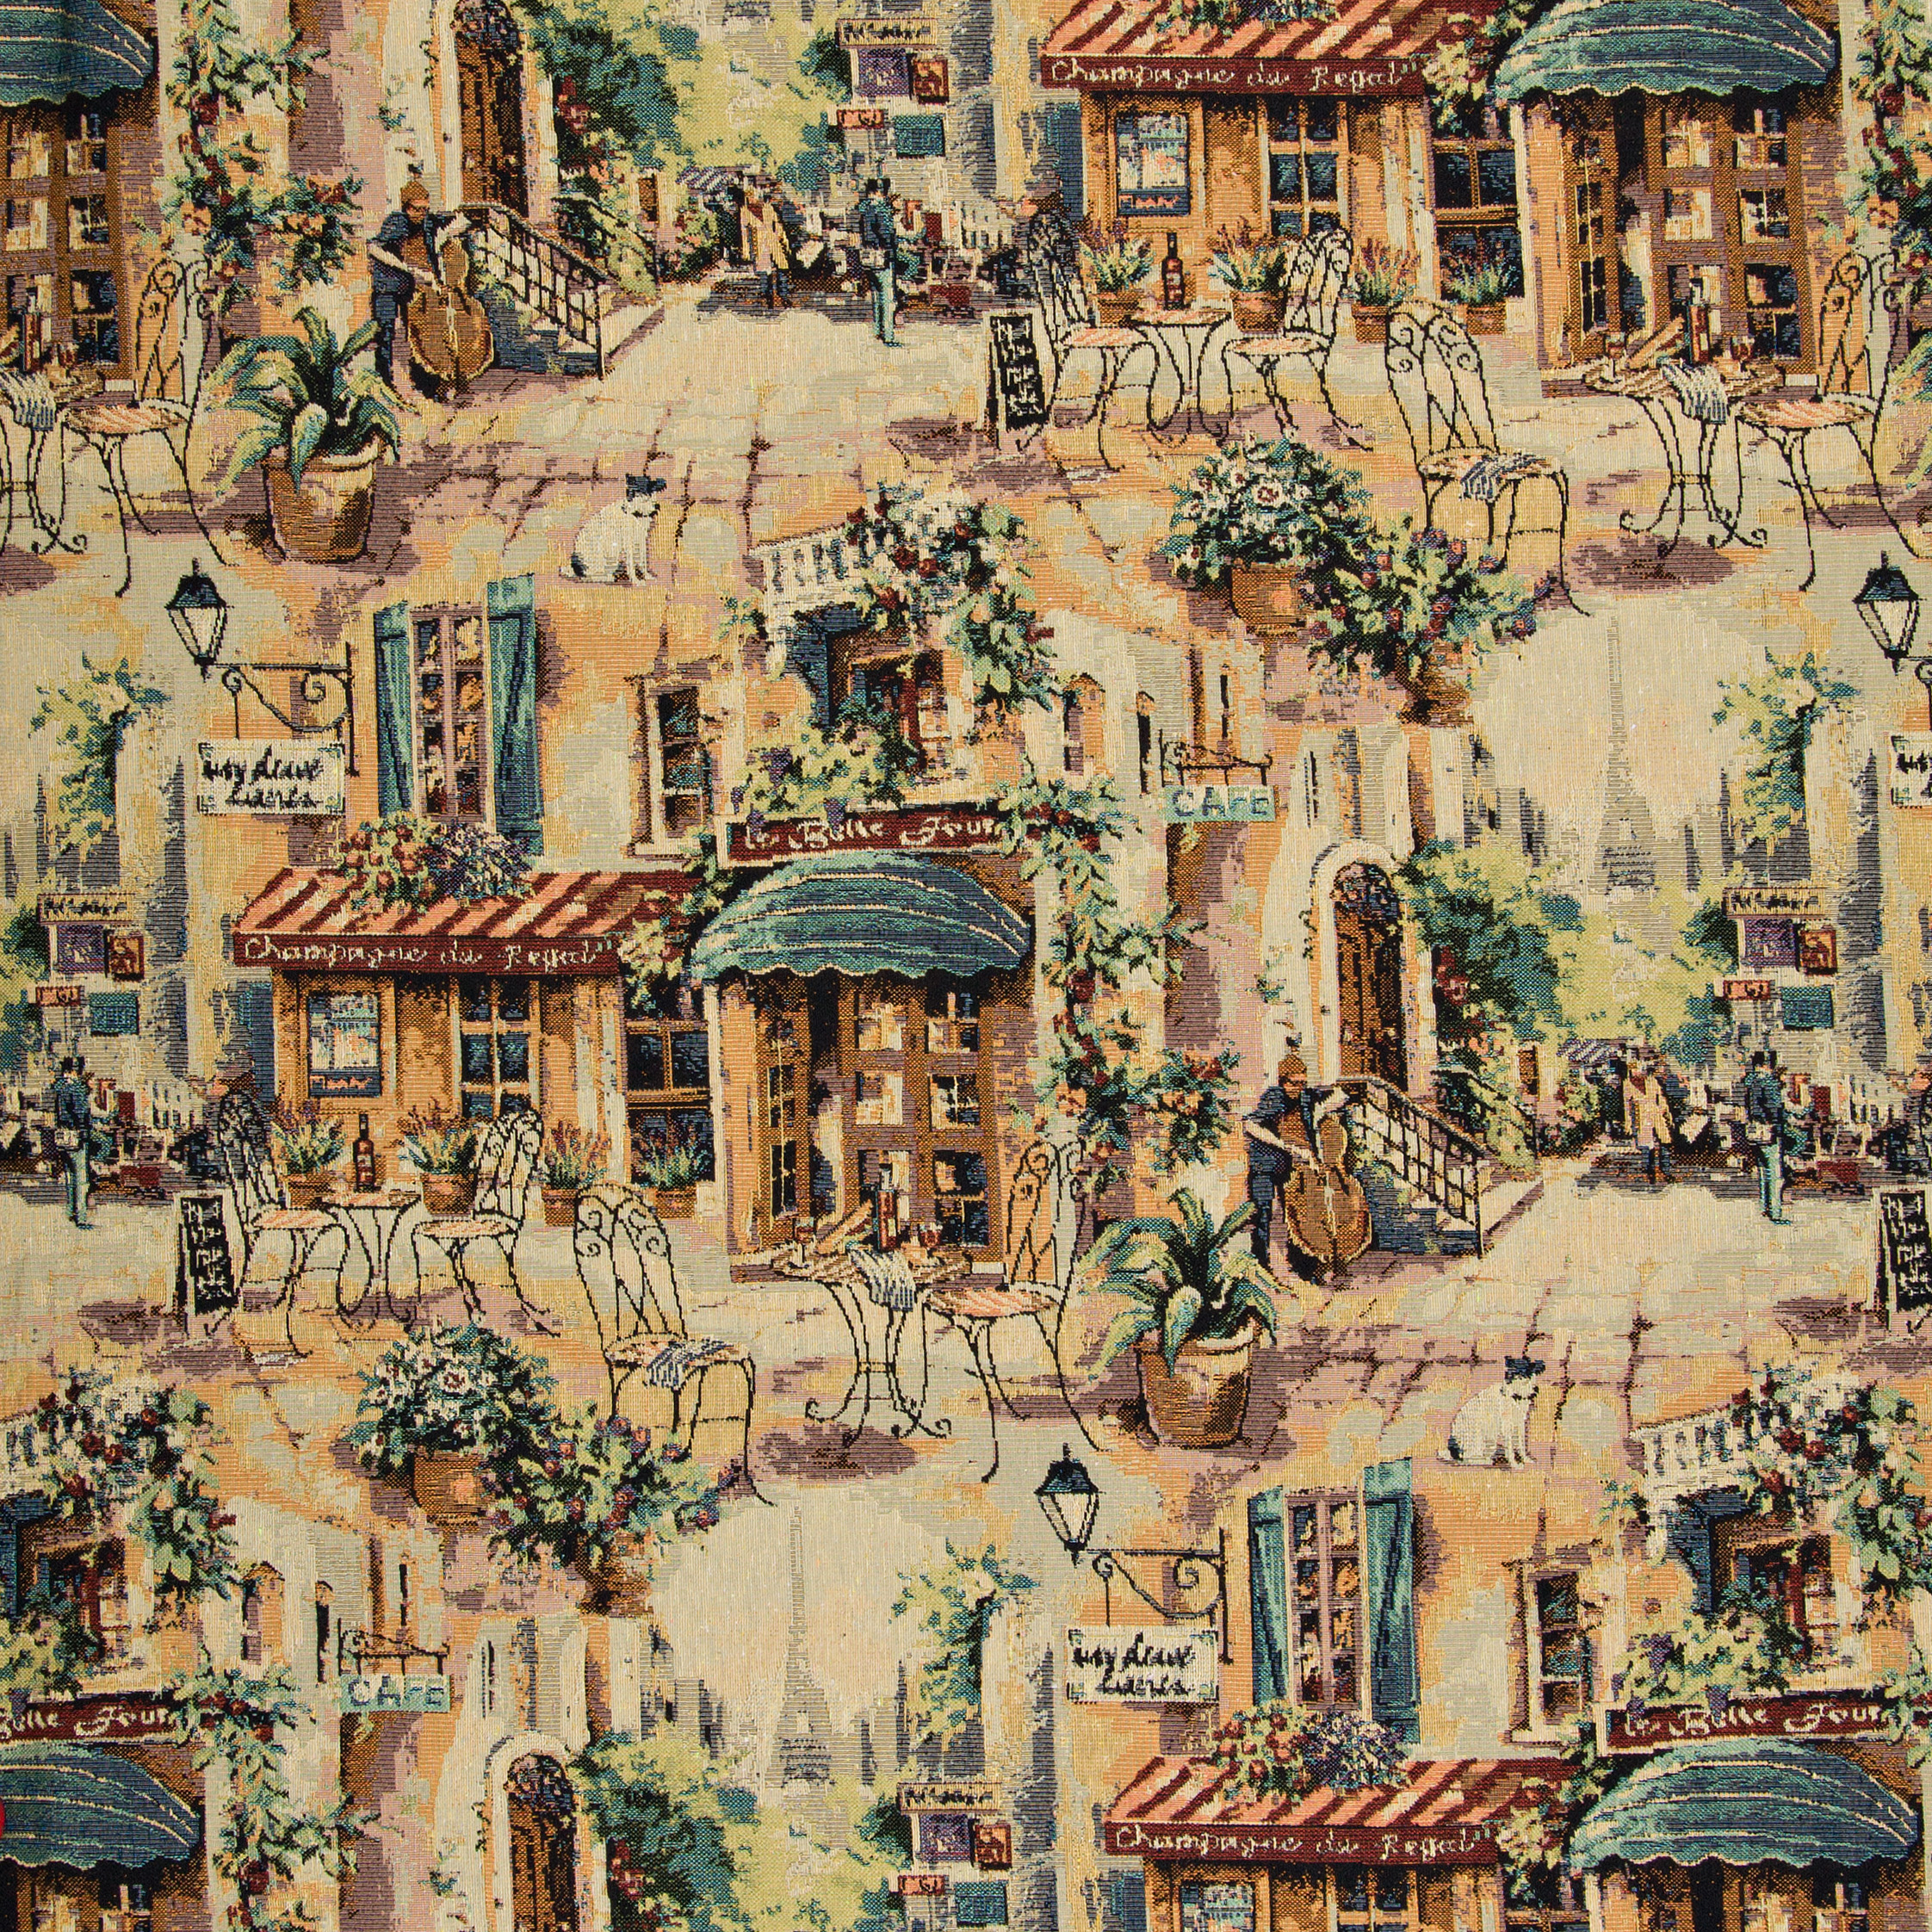 French Bistro Eclectic Cafe Themed Tapestry Upholstery Fabric